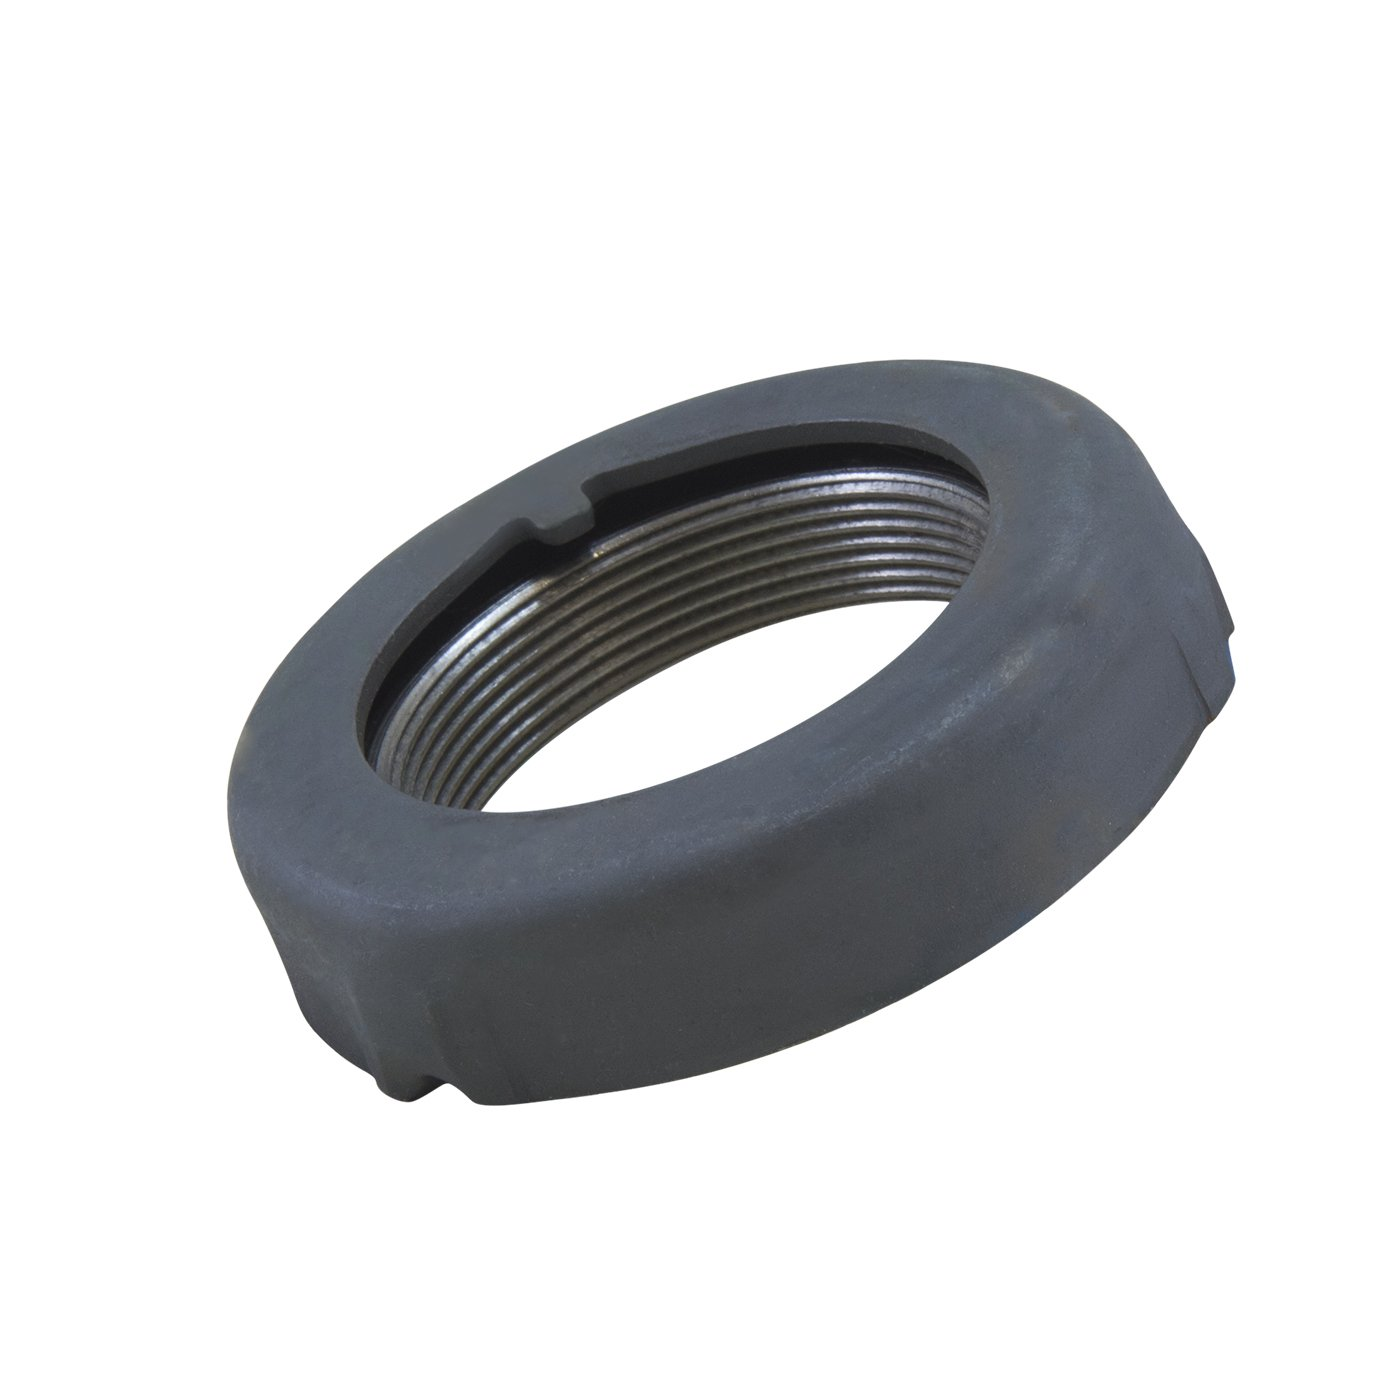 Yukon Gear & Axle (YSPSP-035) Left Spindle Nut for Ford 10.25 Differential by Yukon Gear (Image #1)